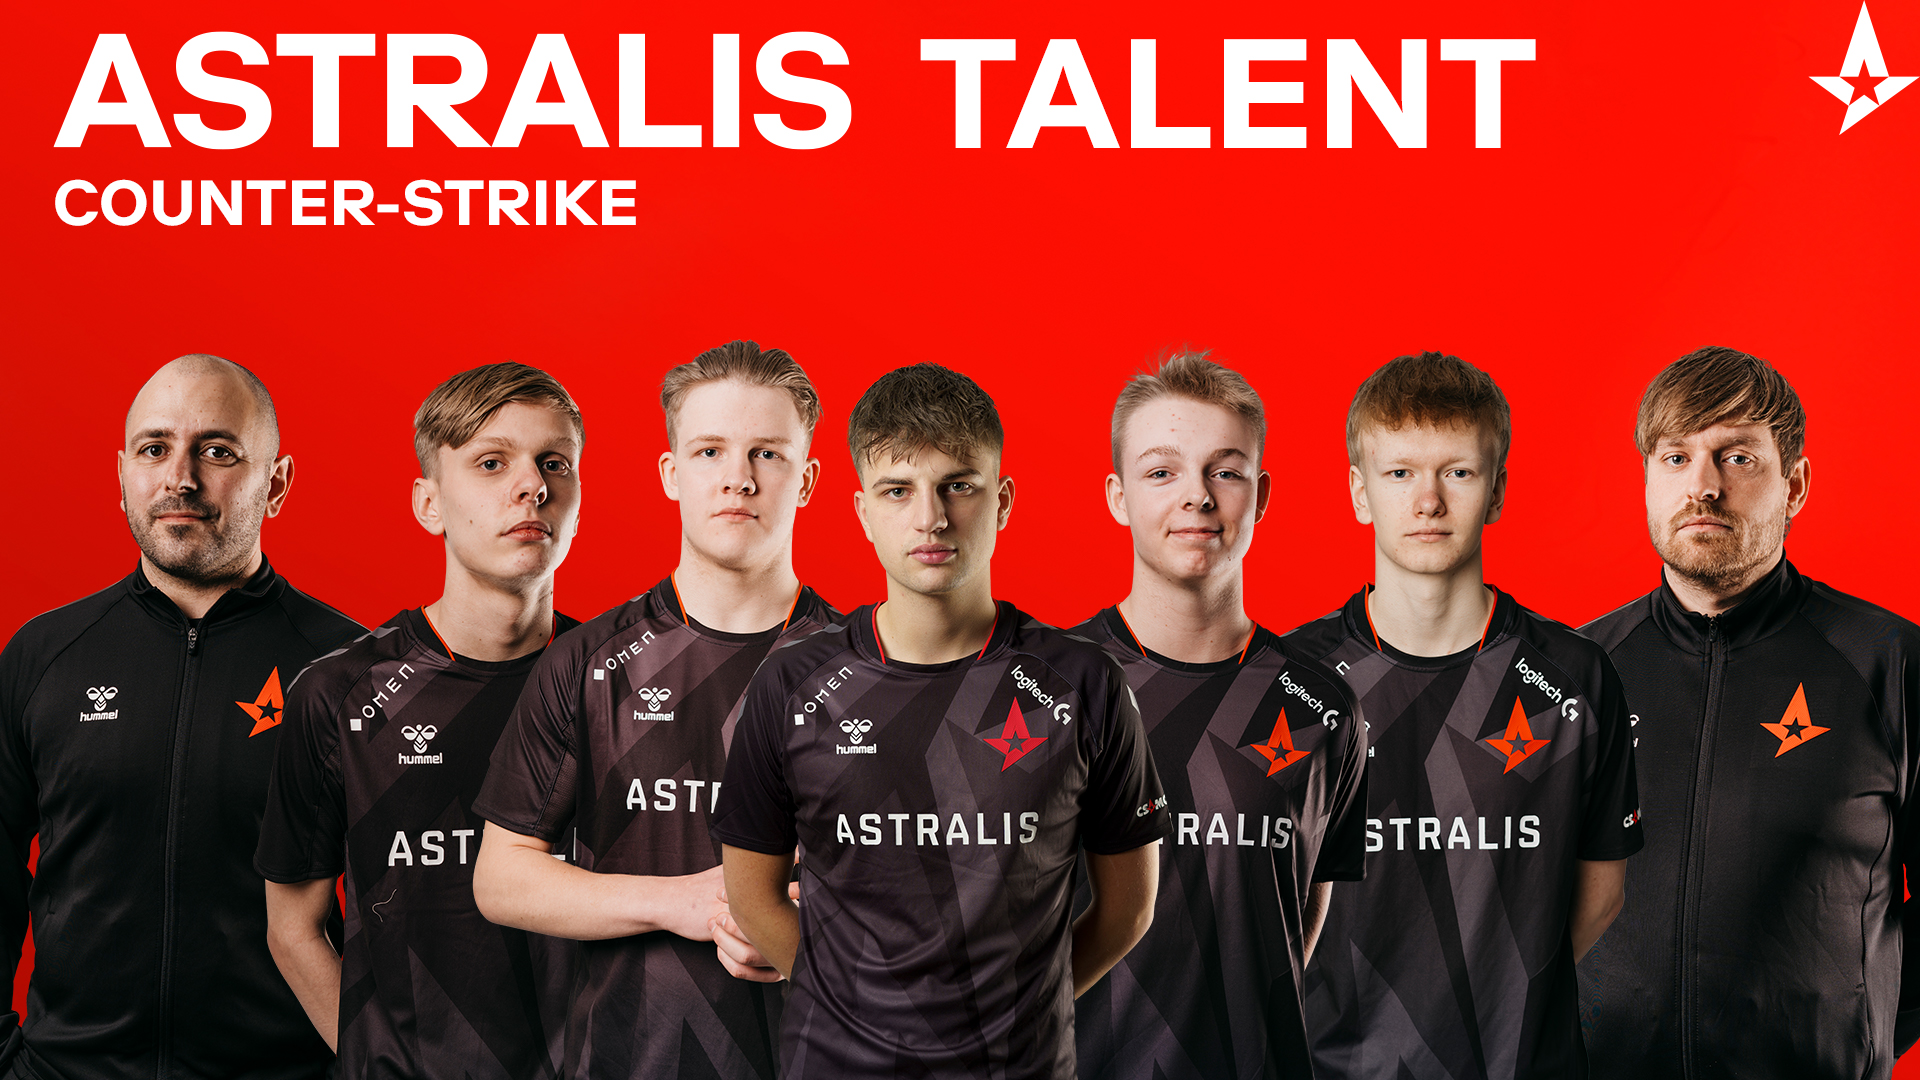 Altekz Debuts With The Counter-Strike Talent Team